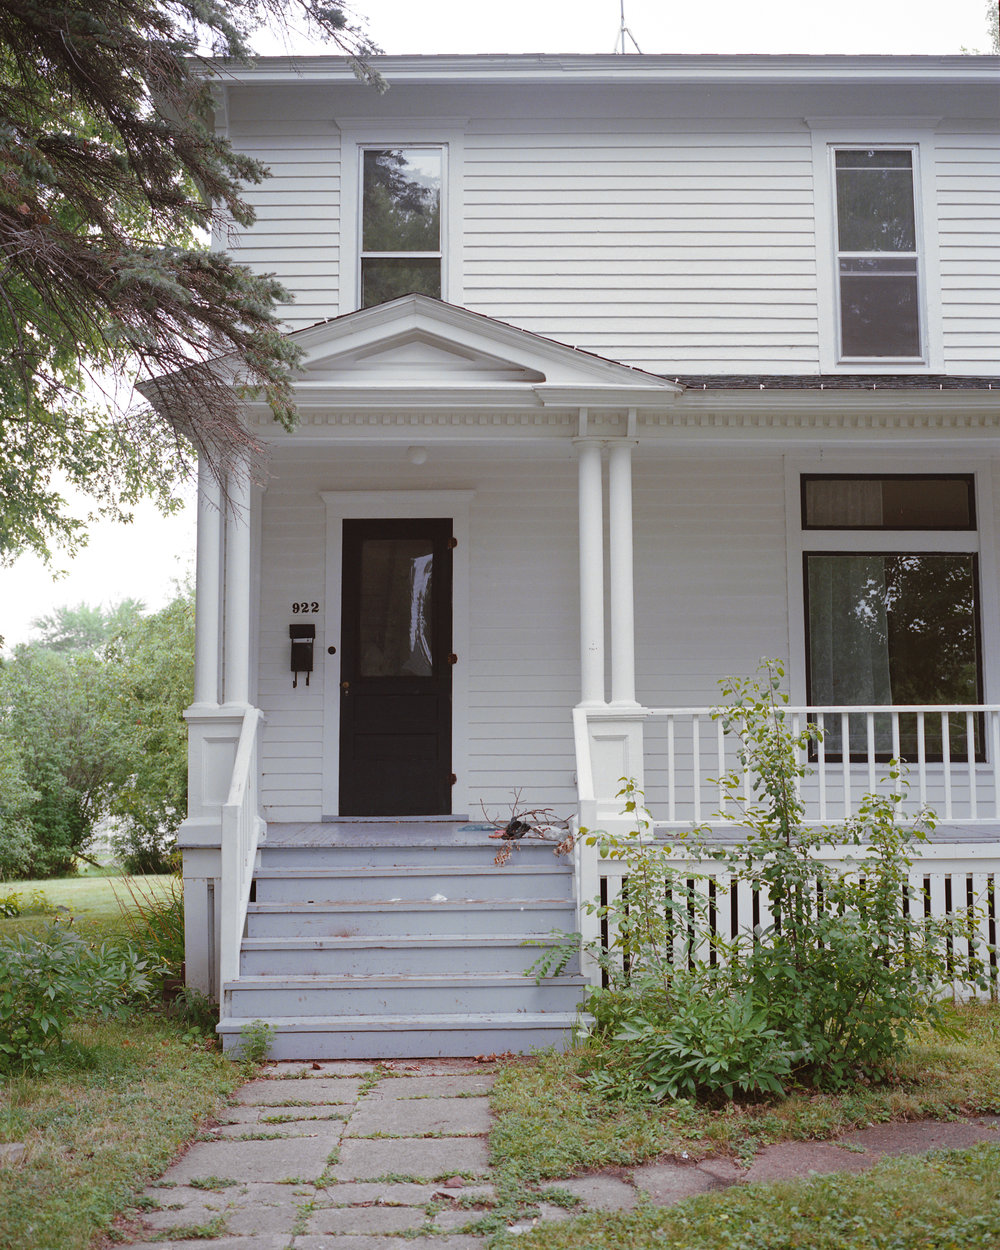 922 Vaughn, the house my grandmother grew up in